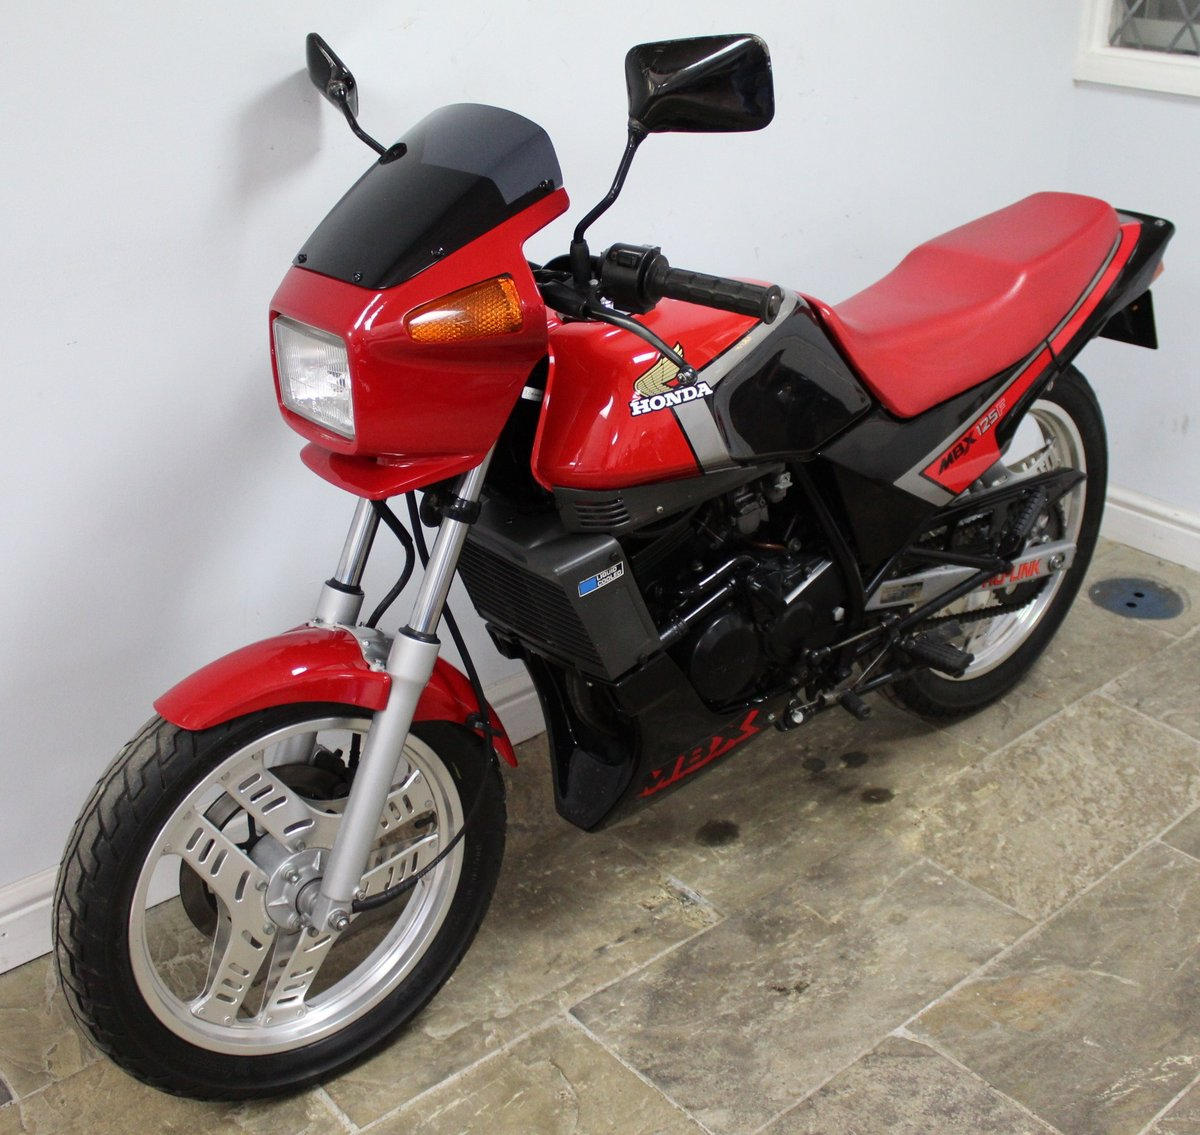 3495 1986 Honda MBX 125 cc 29,000 KM from new (18,020 Miles) SOLD (picture 6 of 6)